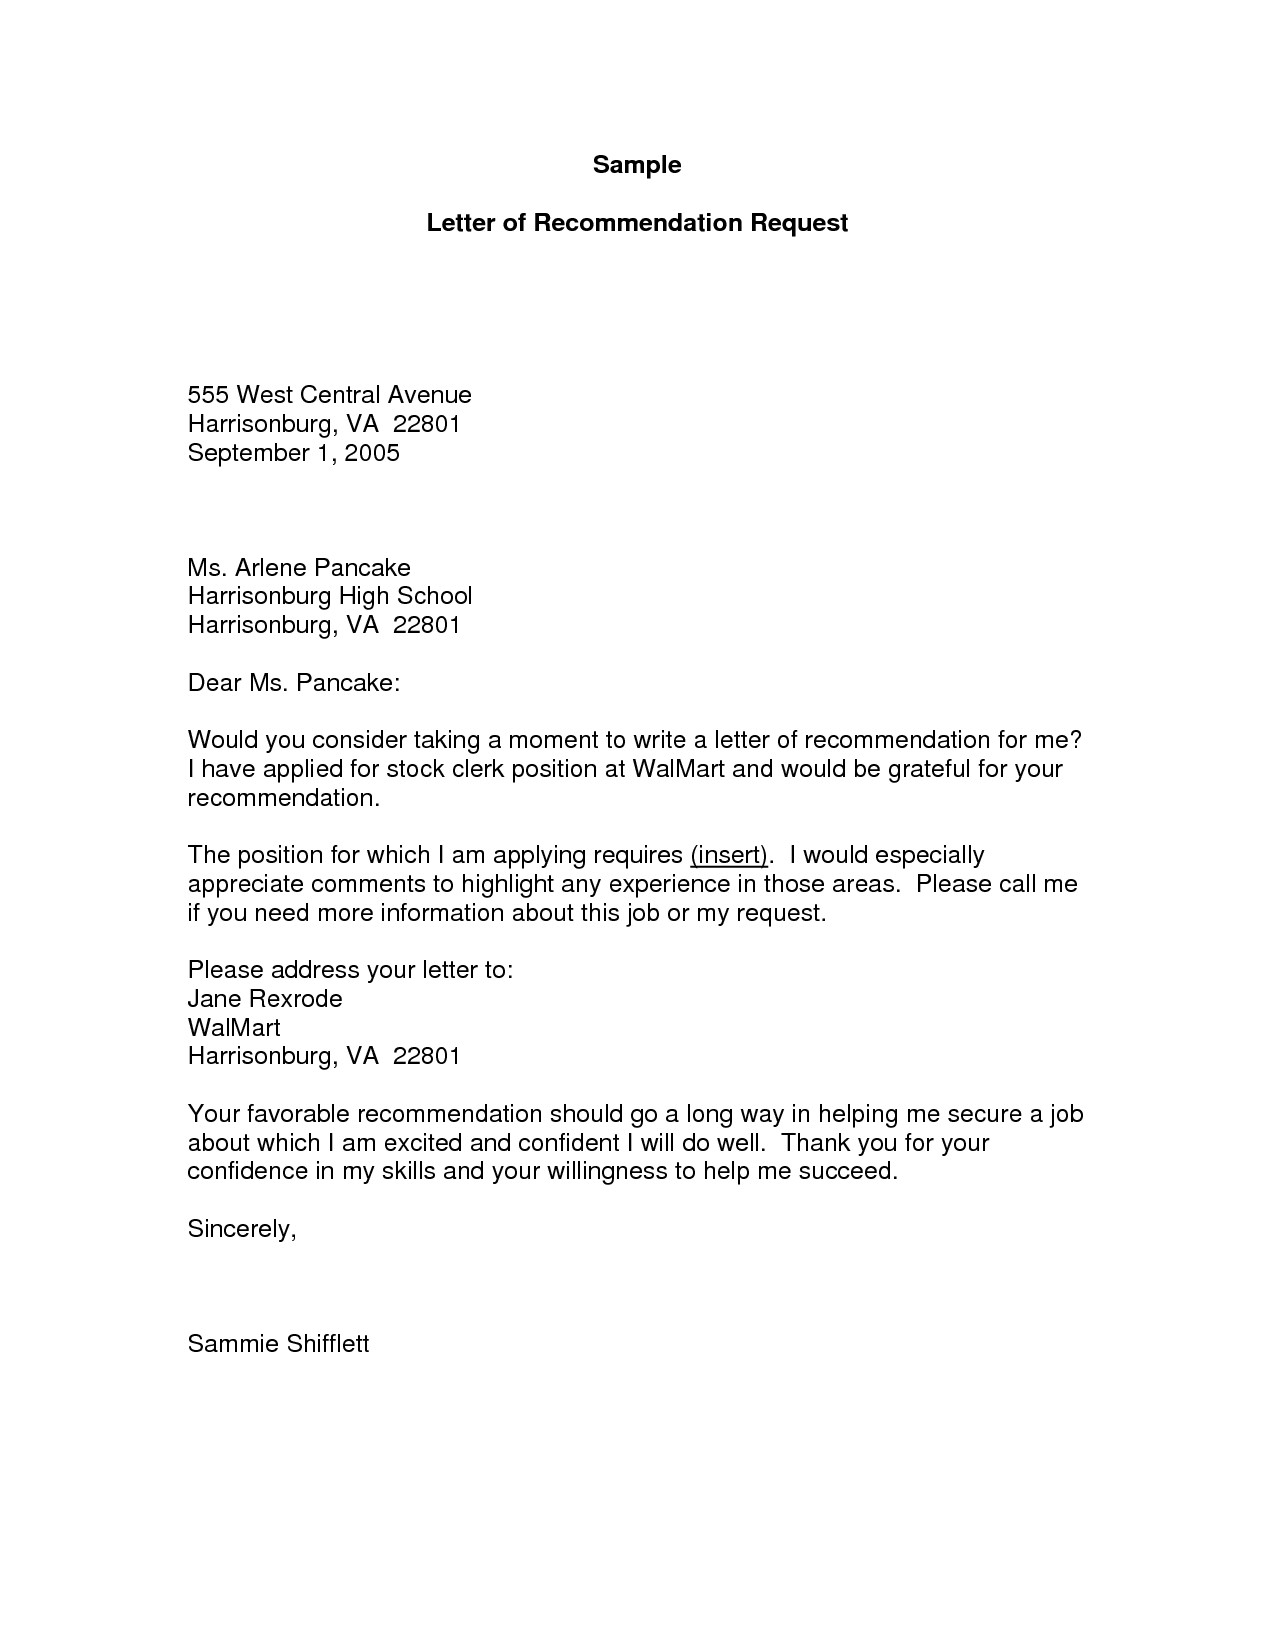 Letter Of Recommendation Request Template - Samples Letters Re Mendation for A Job Refrence Gallery